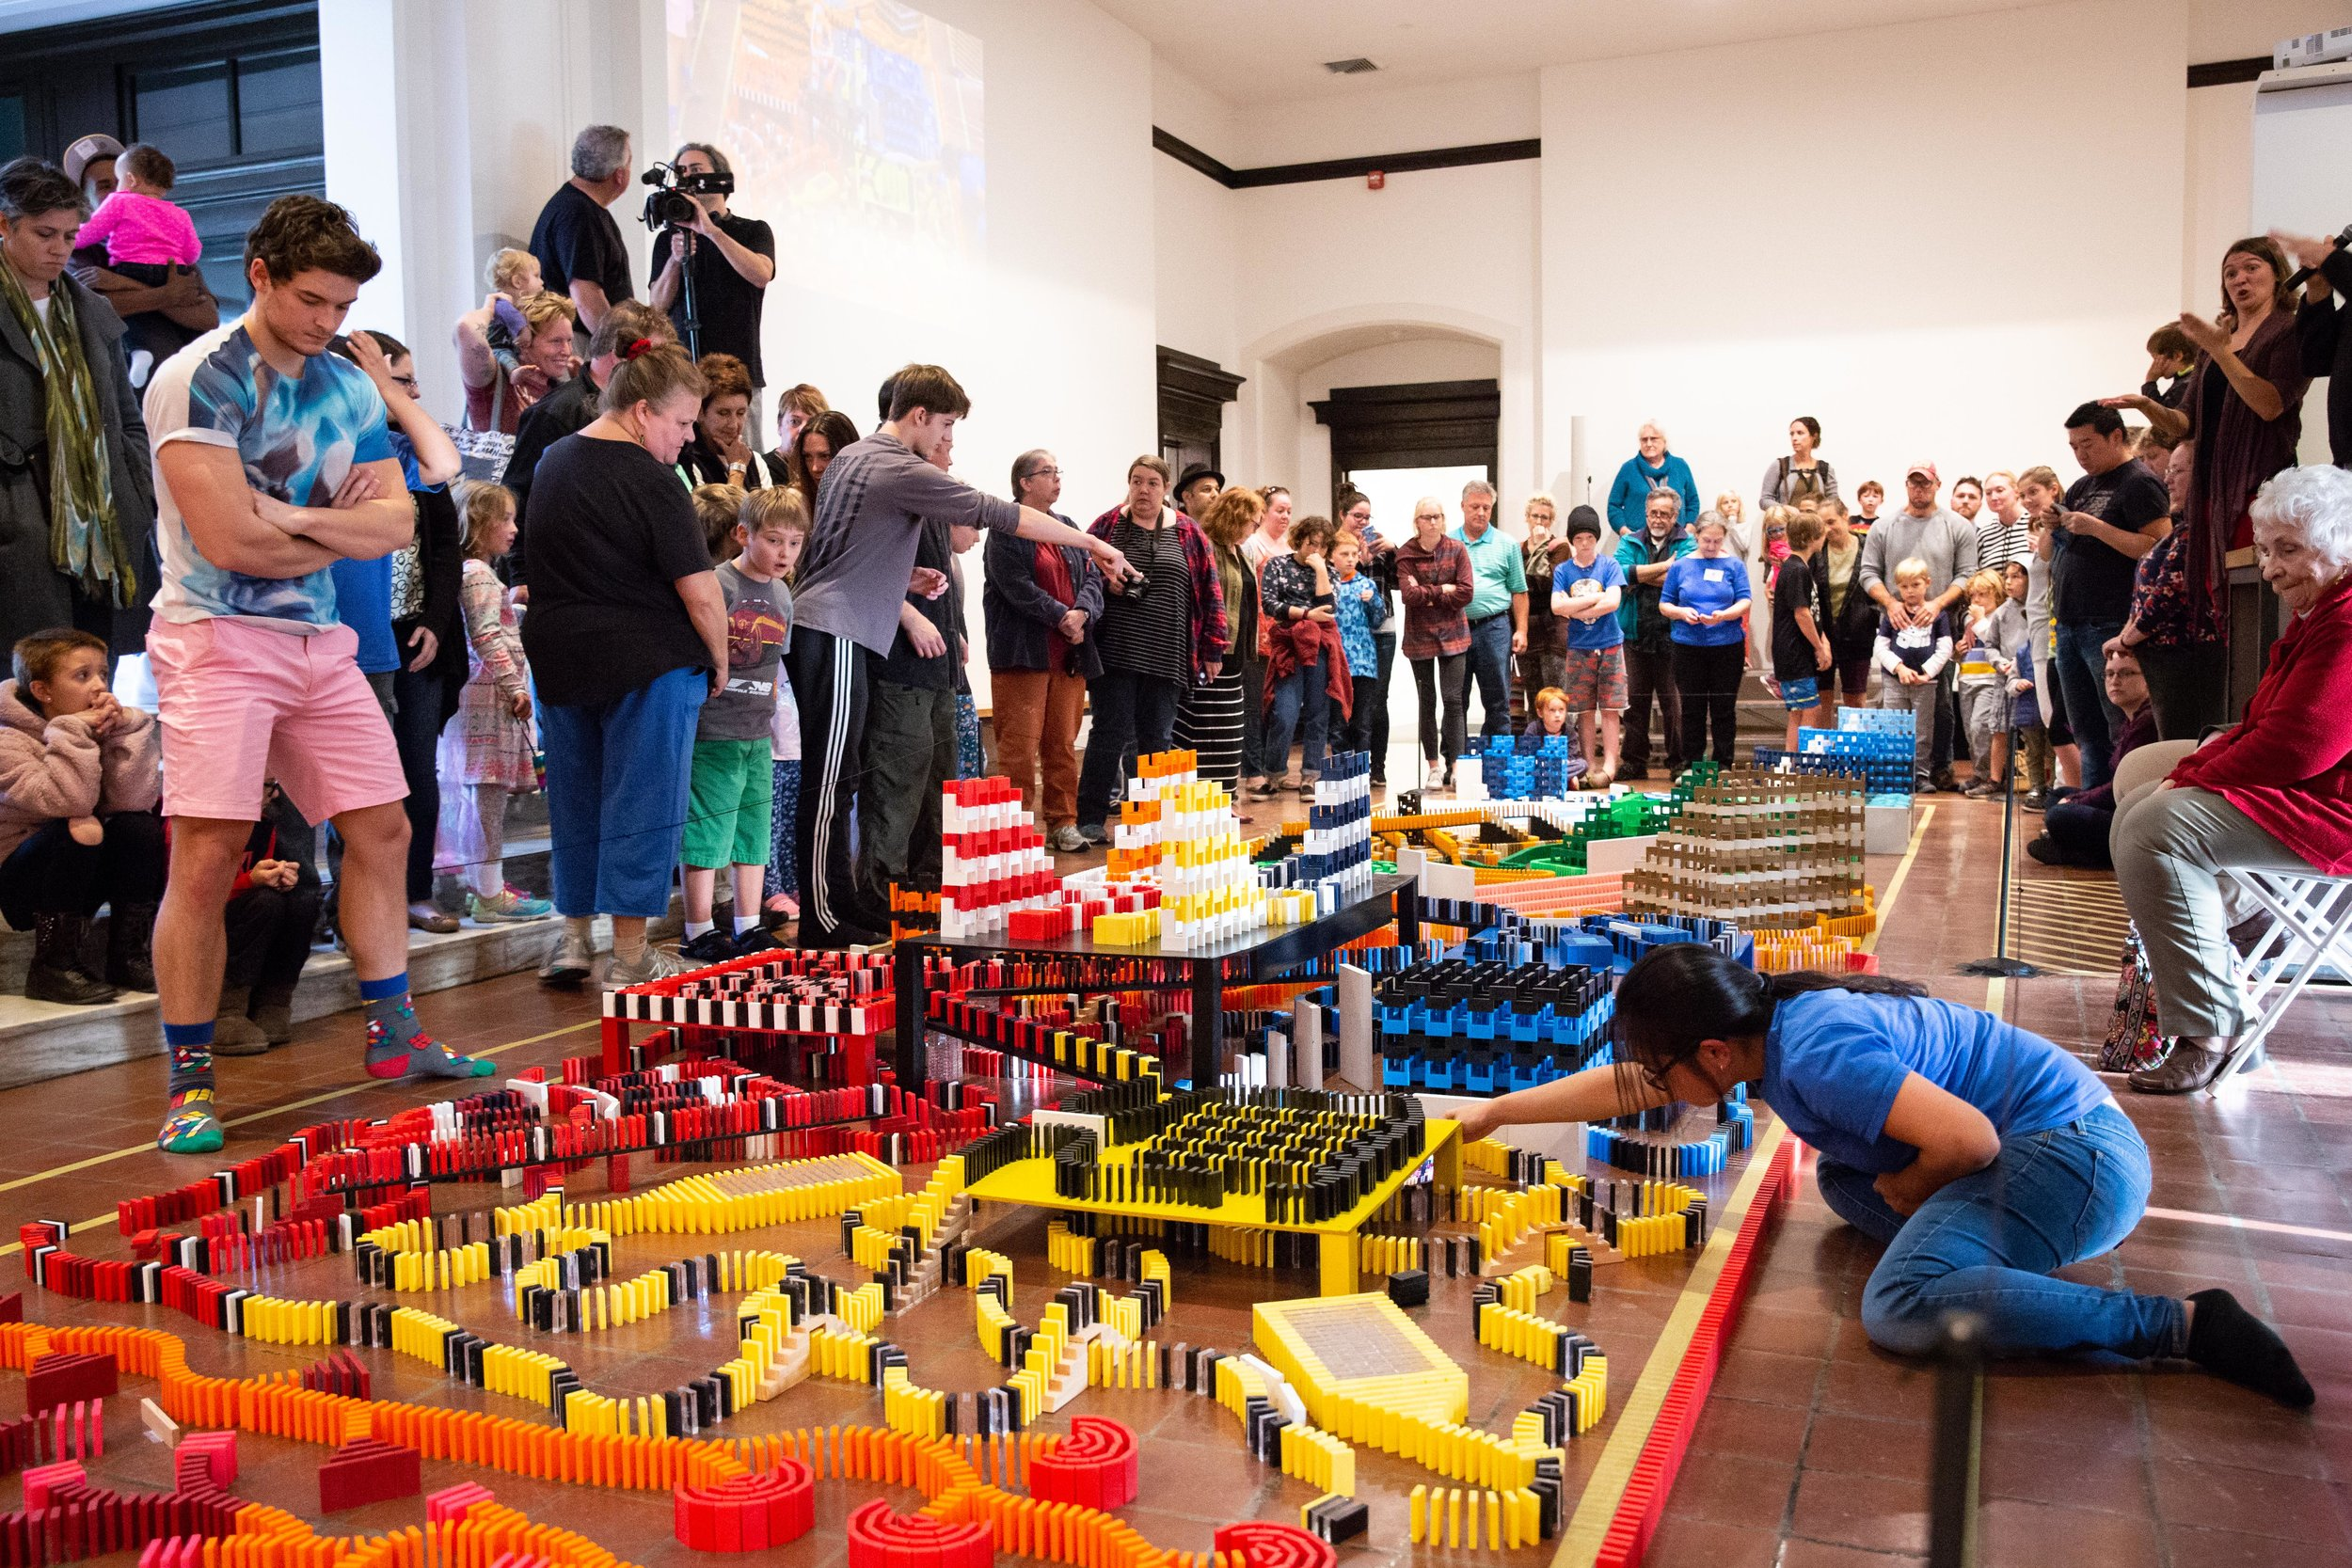 BMAC's 11th Annual Domino Toppling Extravaganza, 2018. Photo credit: Michelle Frehsee